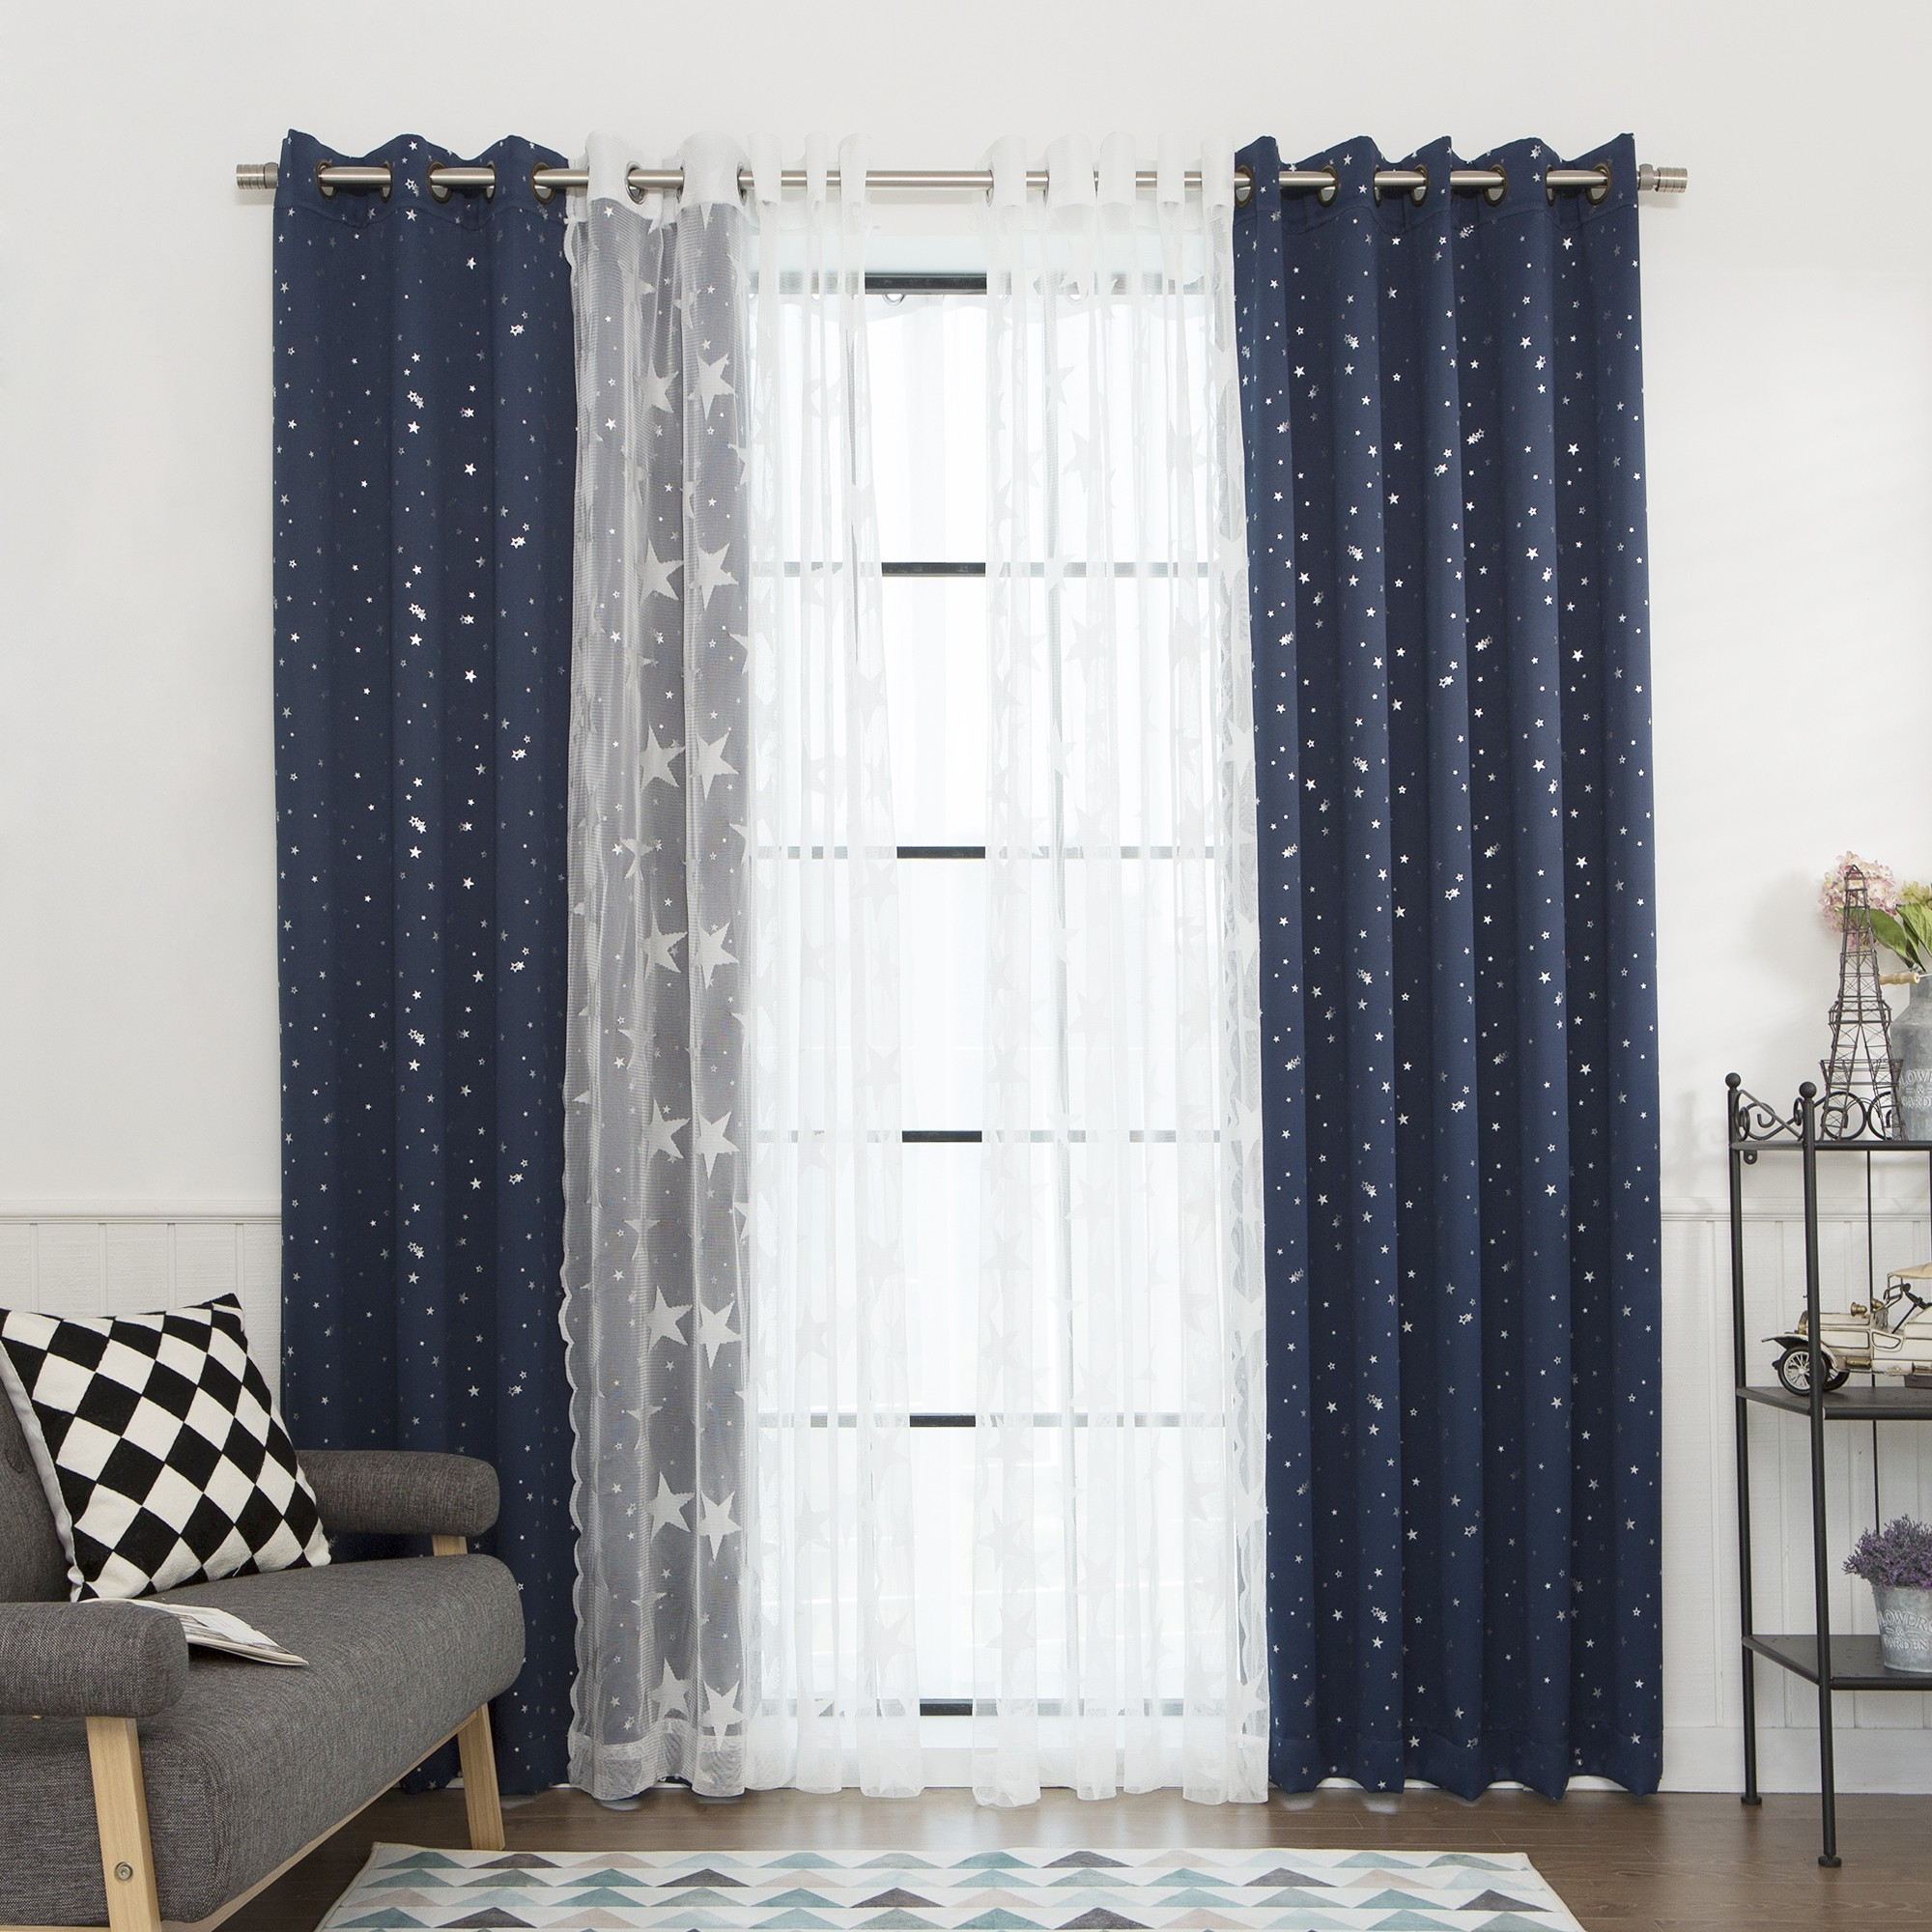 Curtains Inspiring Interior Home Decor Ideas With Cool Home Depot Regarding Extra Long Outdoor Curtain Rods (Image 11 of 25)